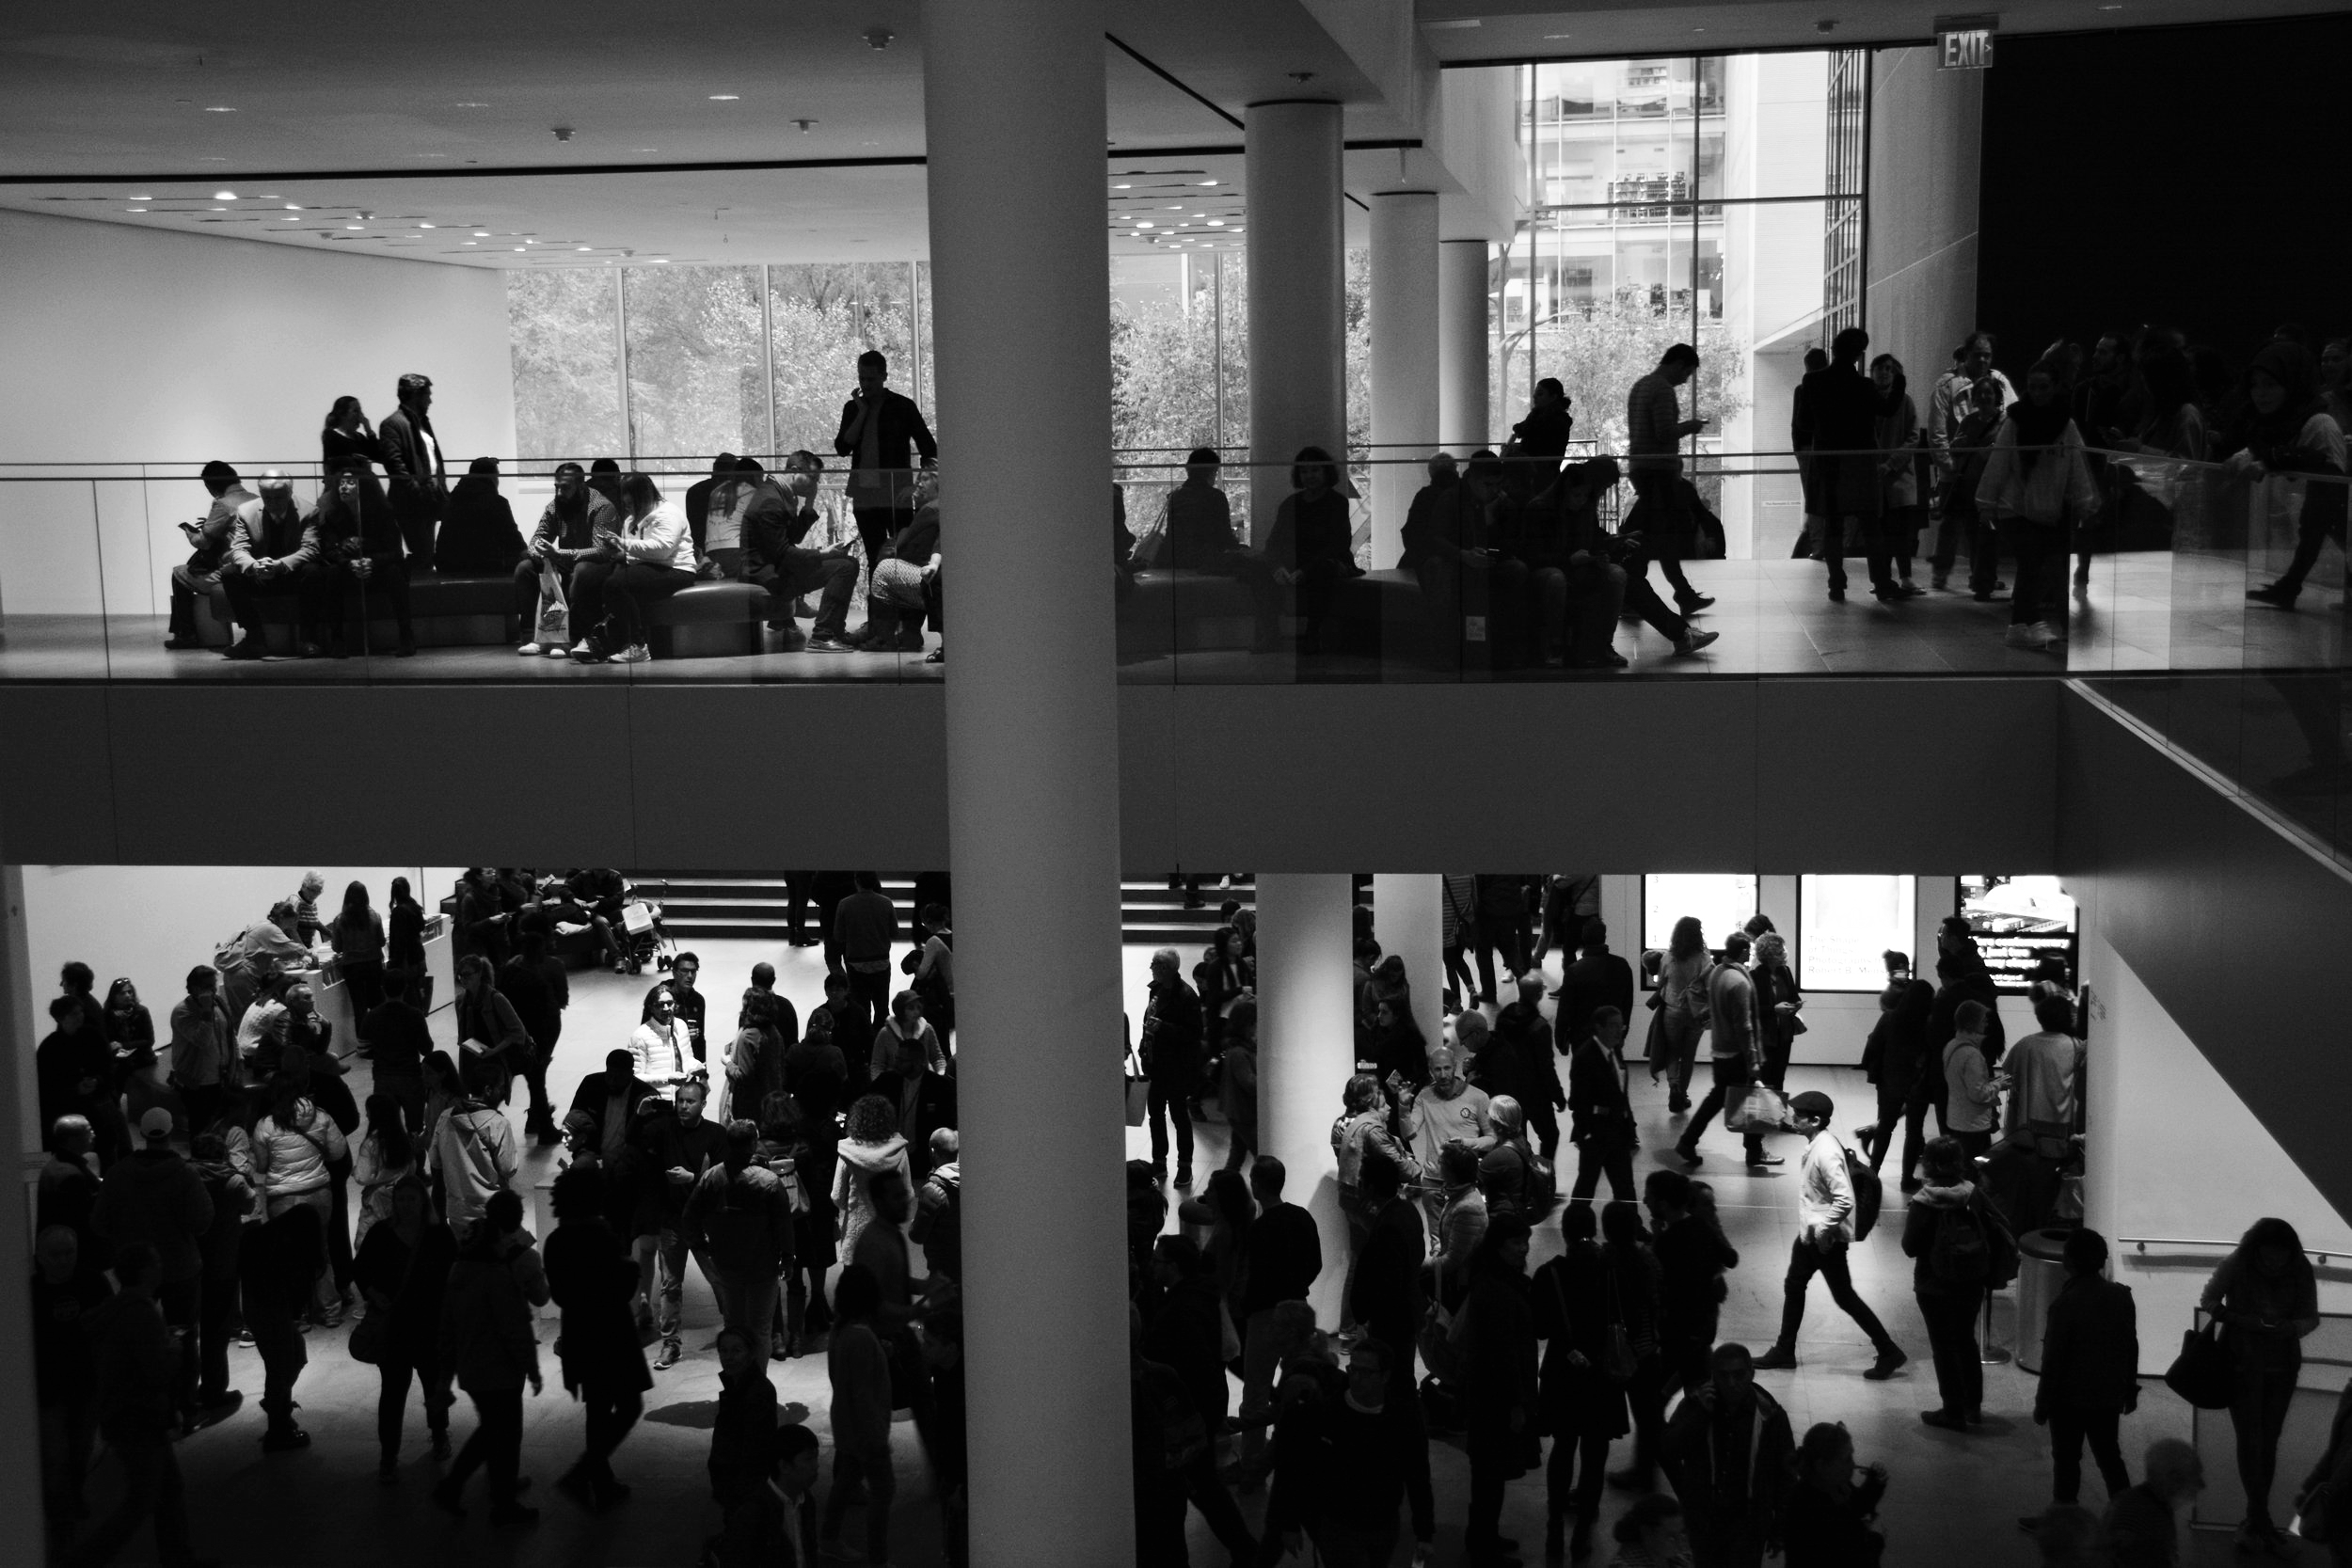 People. Divided. @MOMA, NYC